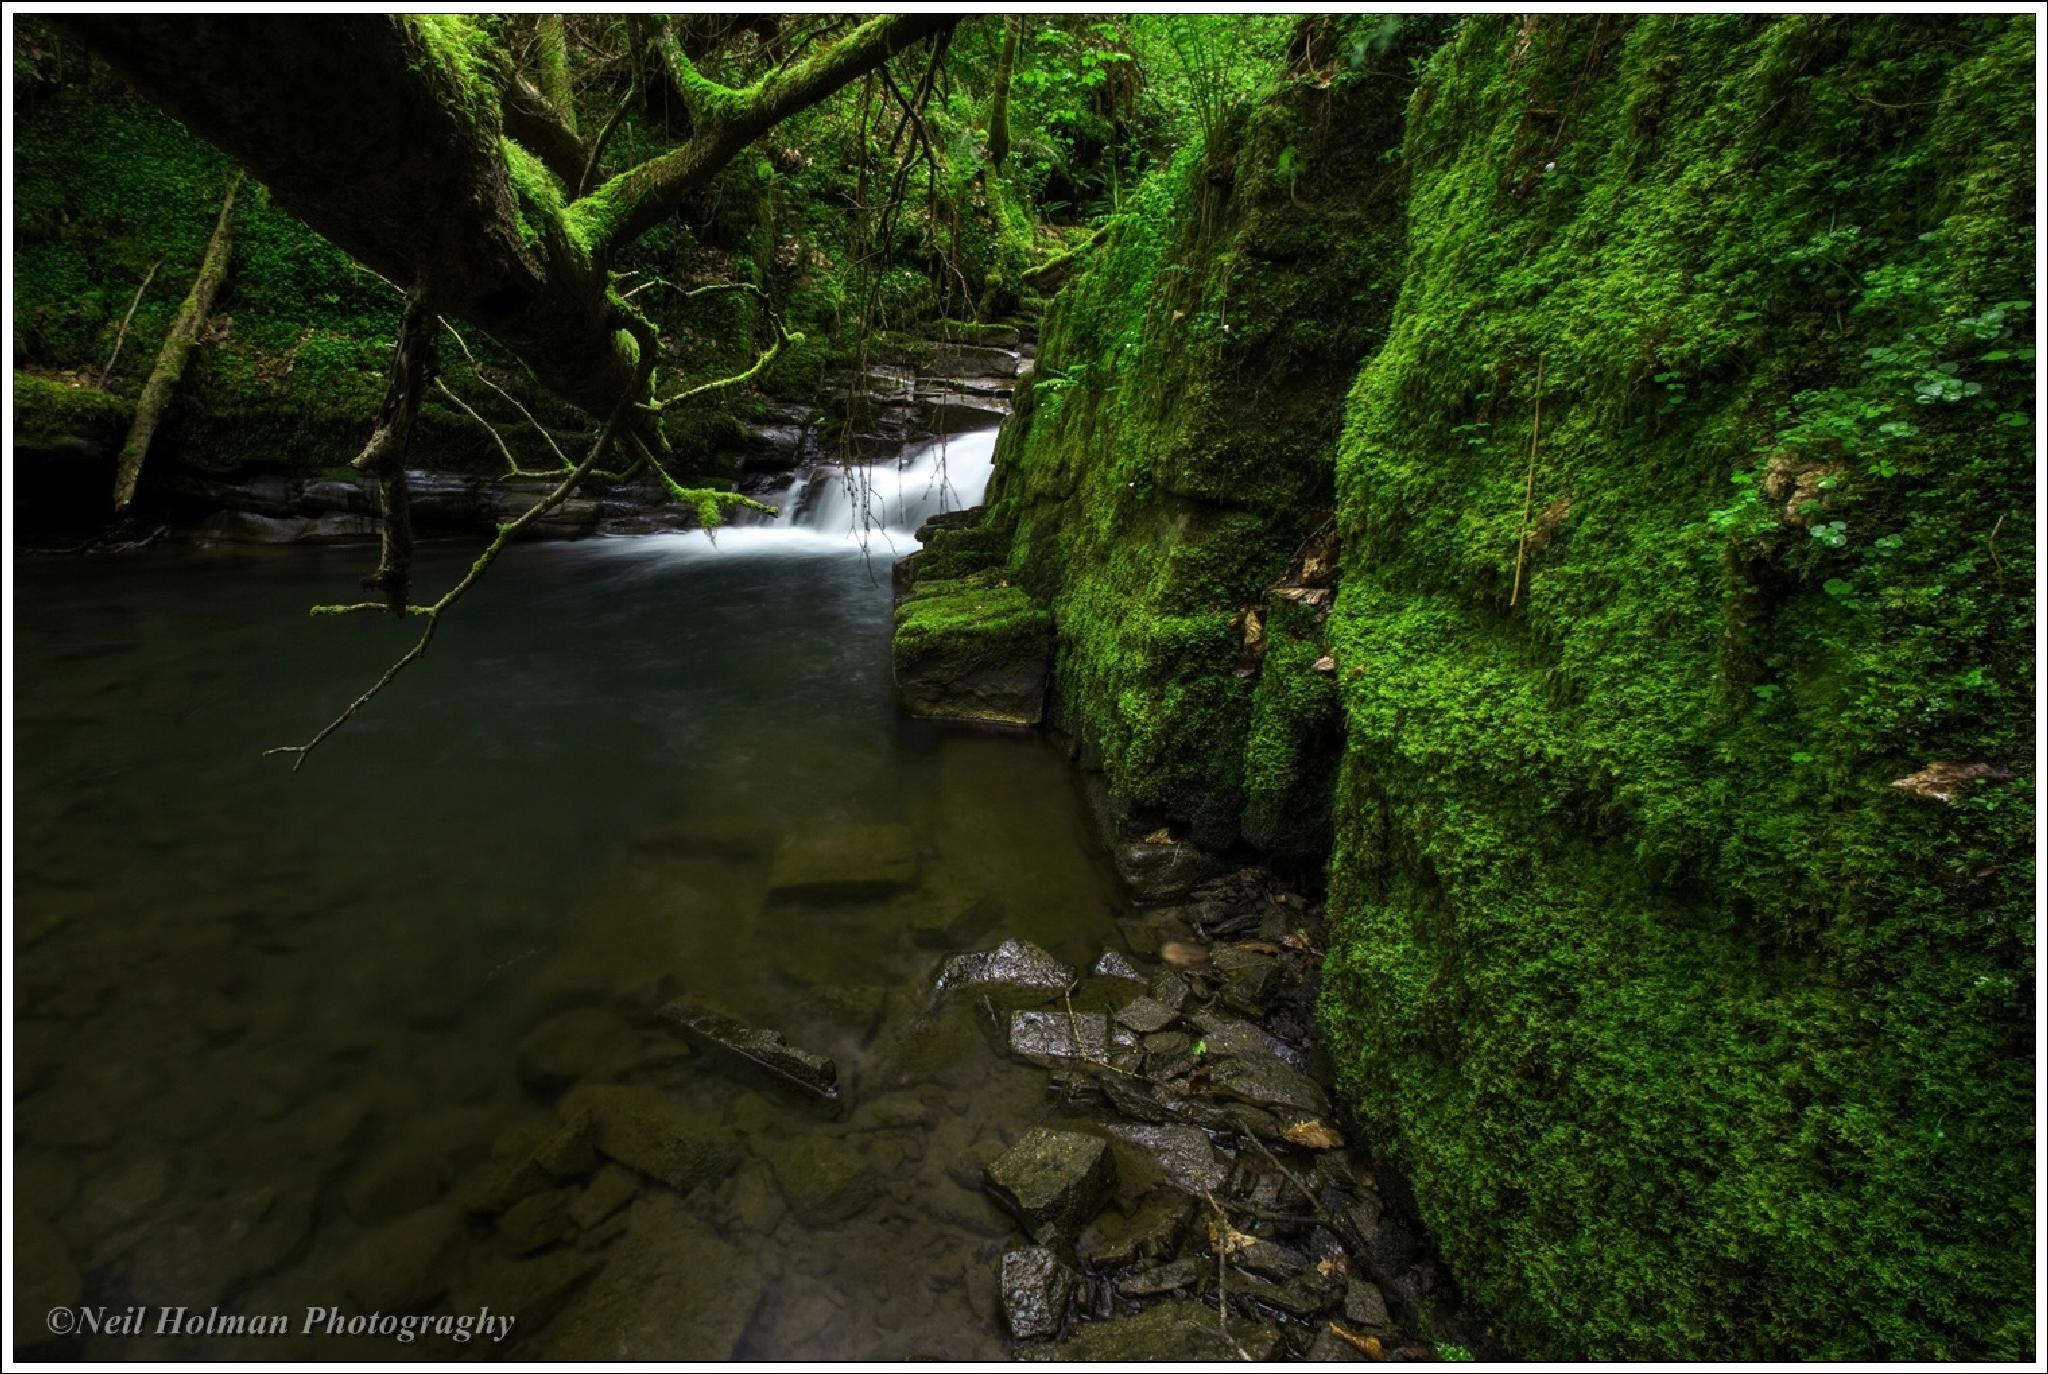 Melincourt Brook by Neil Holman